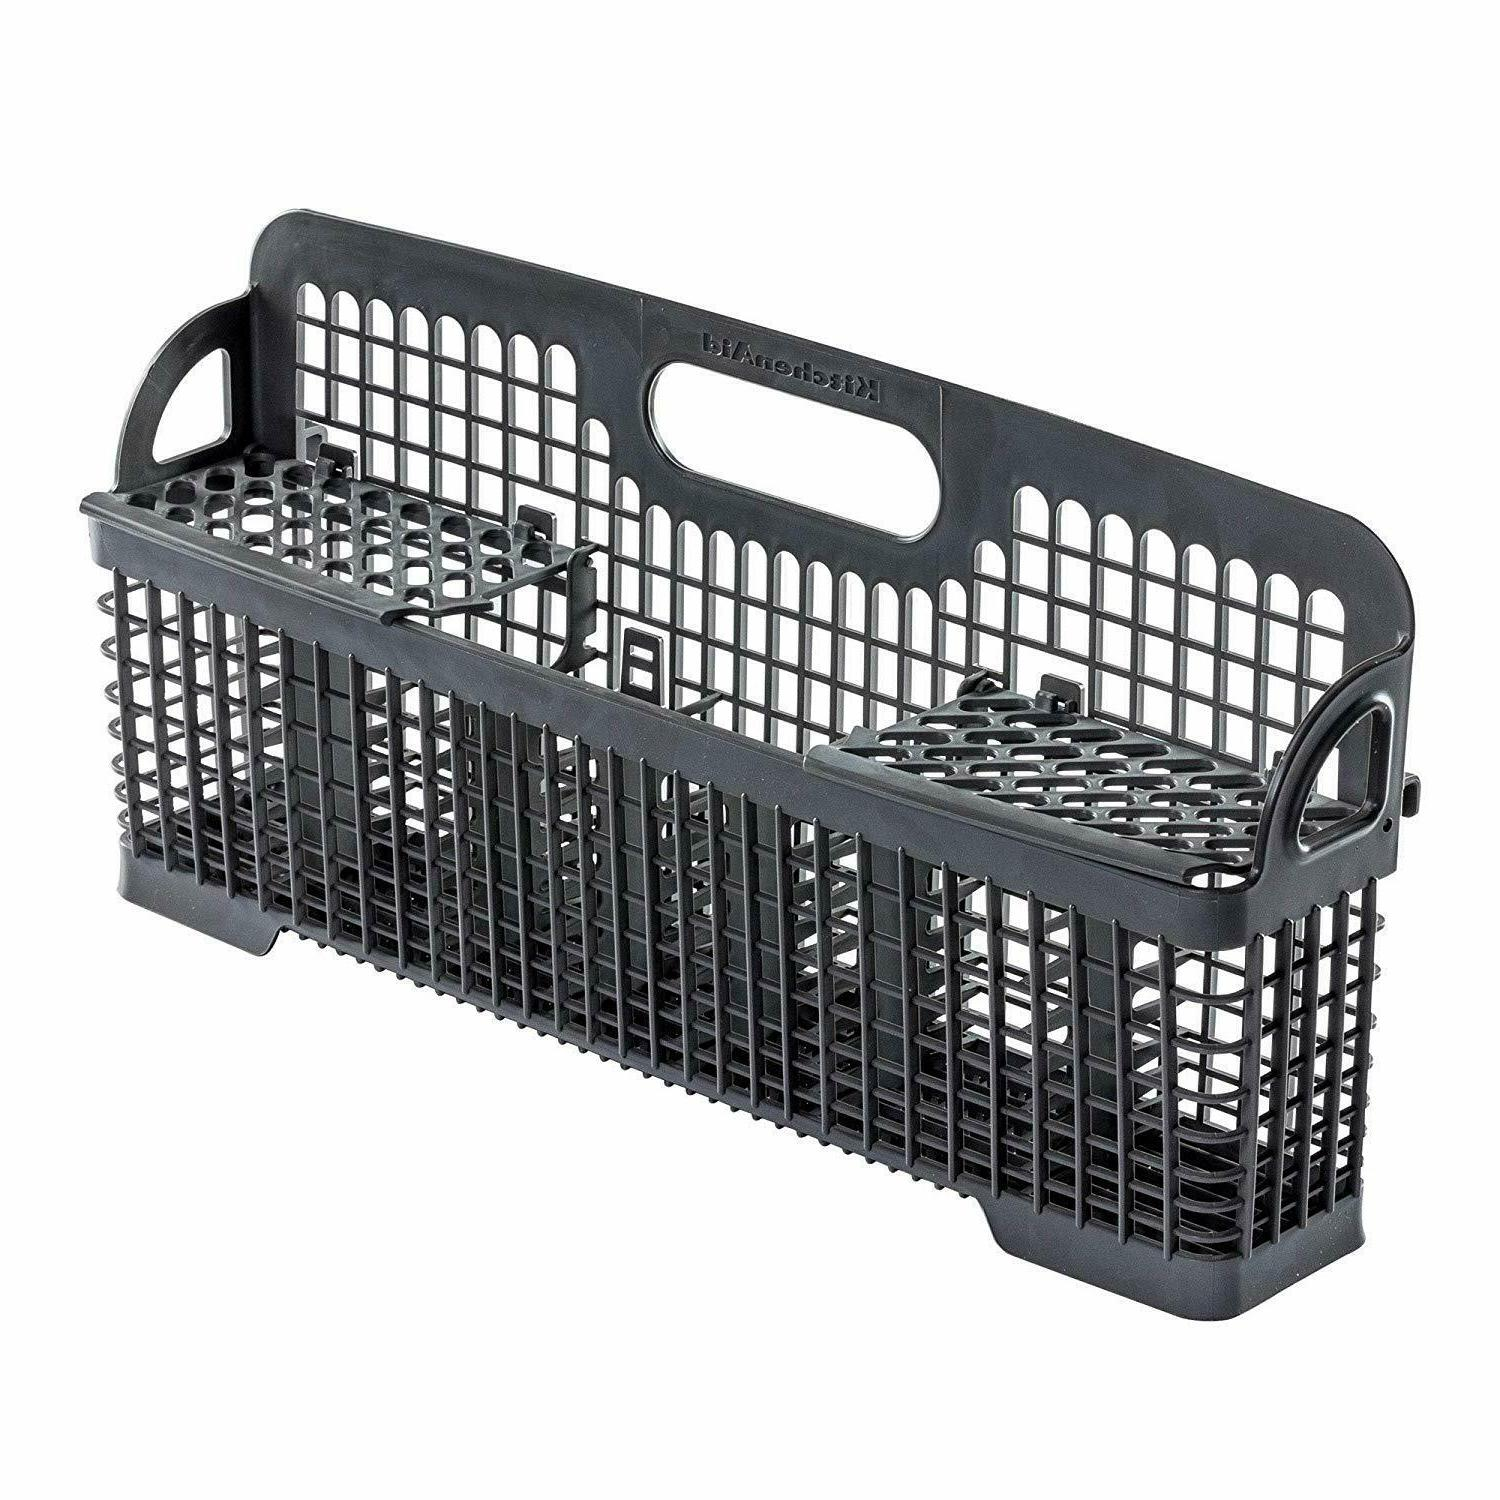 wp8531233 dishwasher silverware basket ap6012898 ps11746119